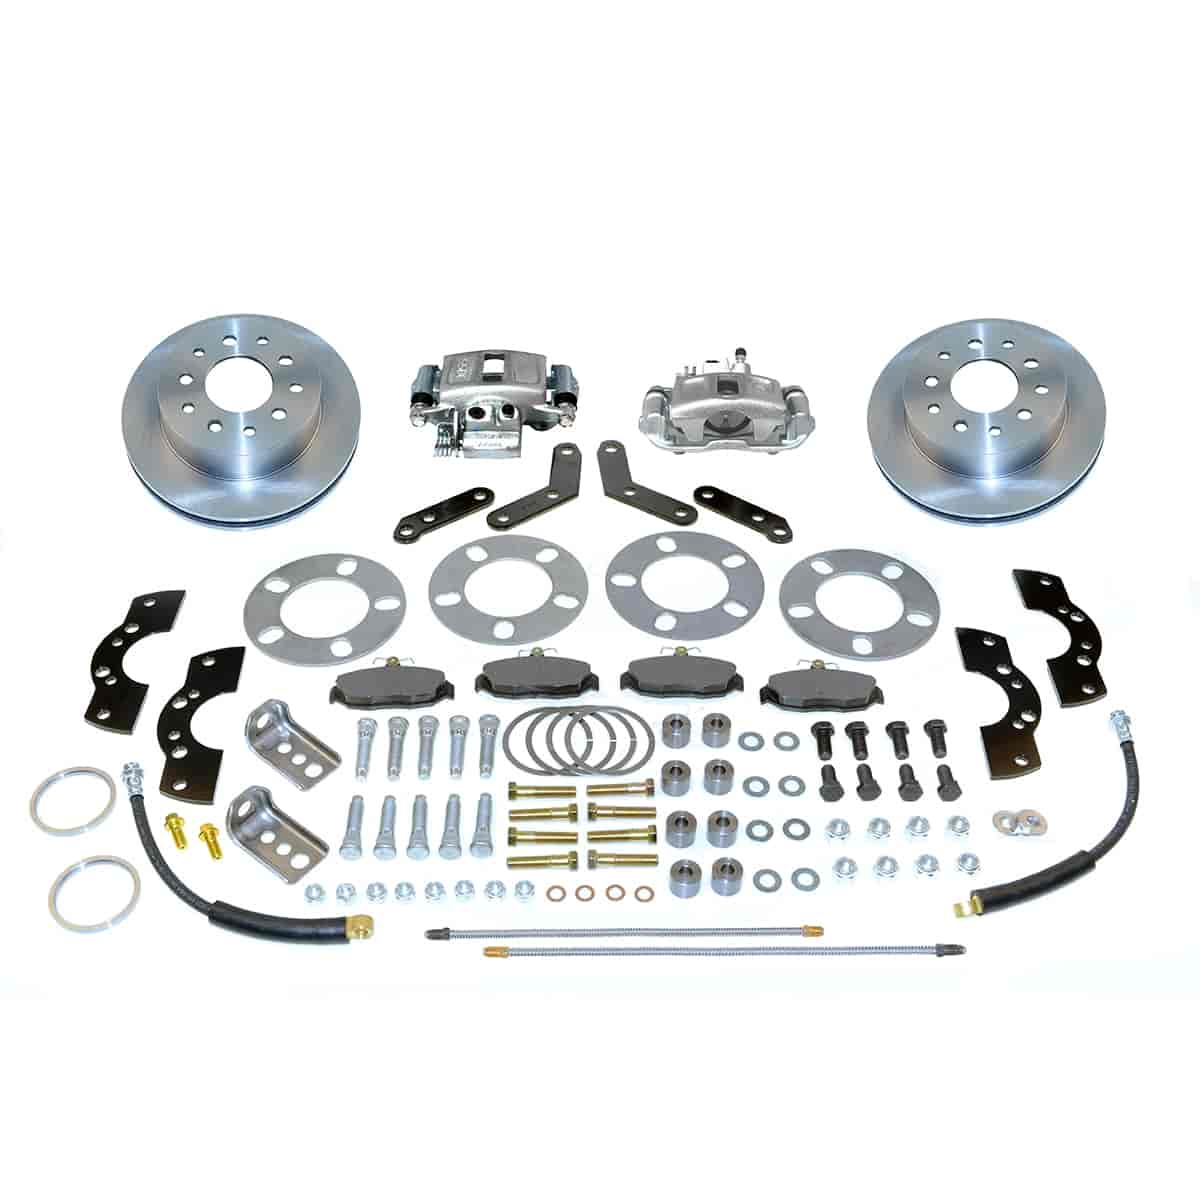 Stainless Steel Brakes A110-2 - Stainless Steel Brakes Single Piston Rear Disc Brake Conversion Kit